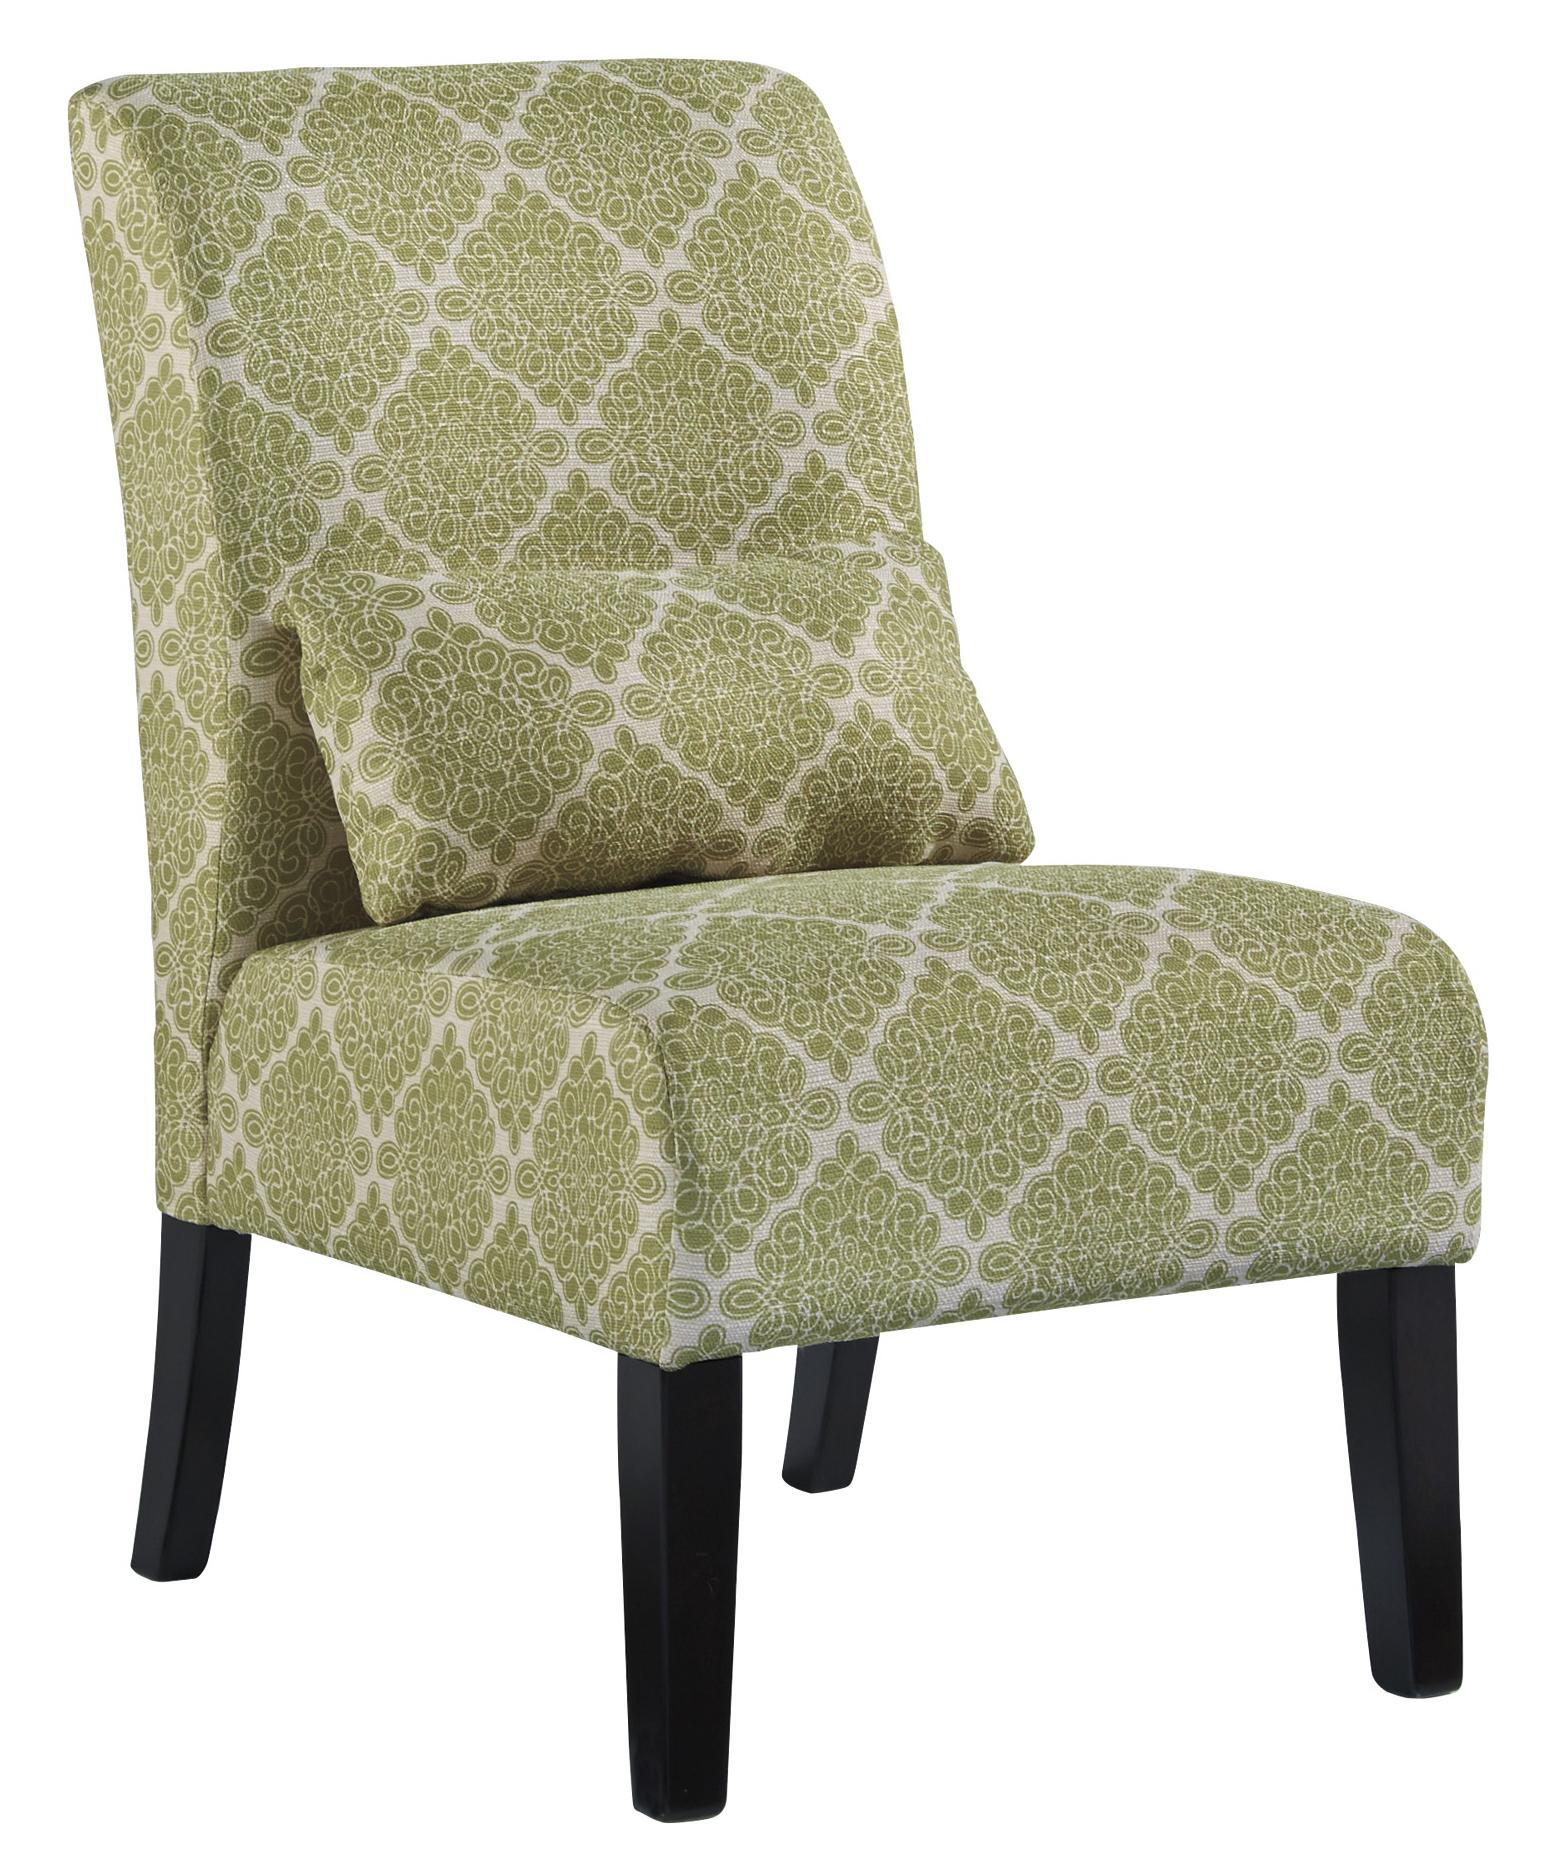 Signature Design by Ashley Annora - Kelly Accent Chair - Item Number: 6160760